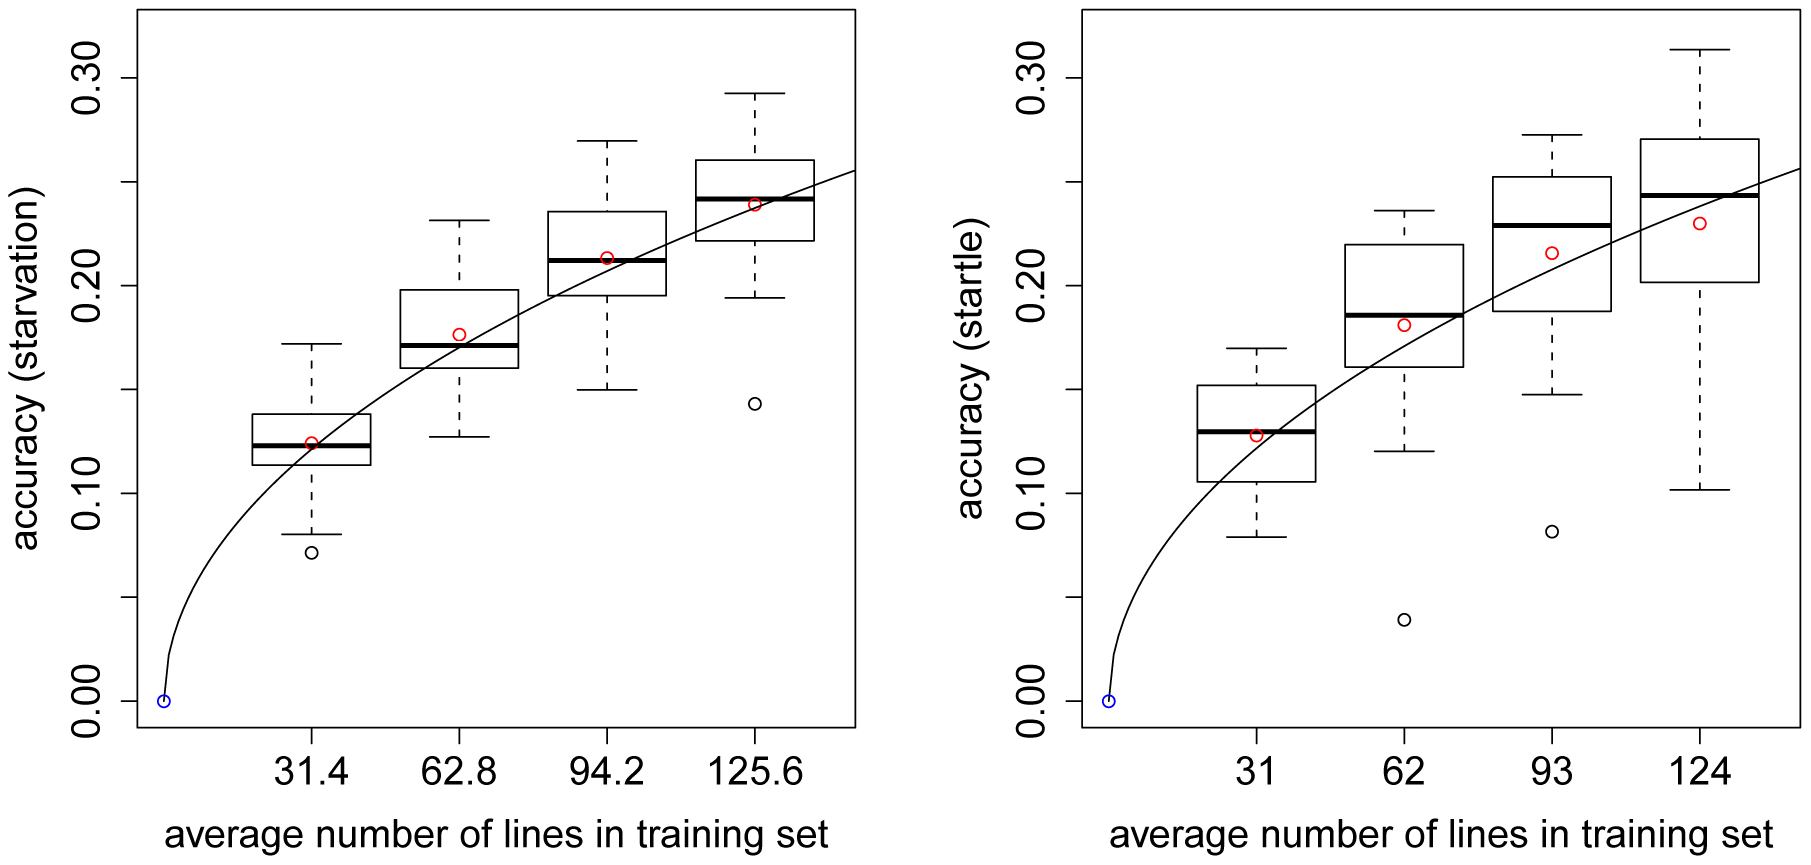 Accuracy of prediction of GBLUP for CVs with different numbers of lines in the training set.